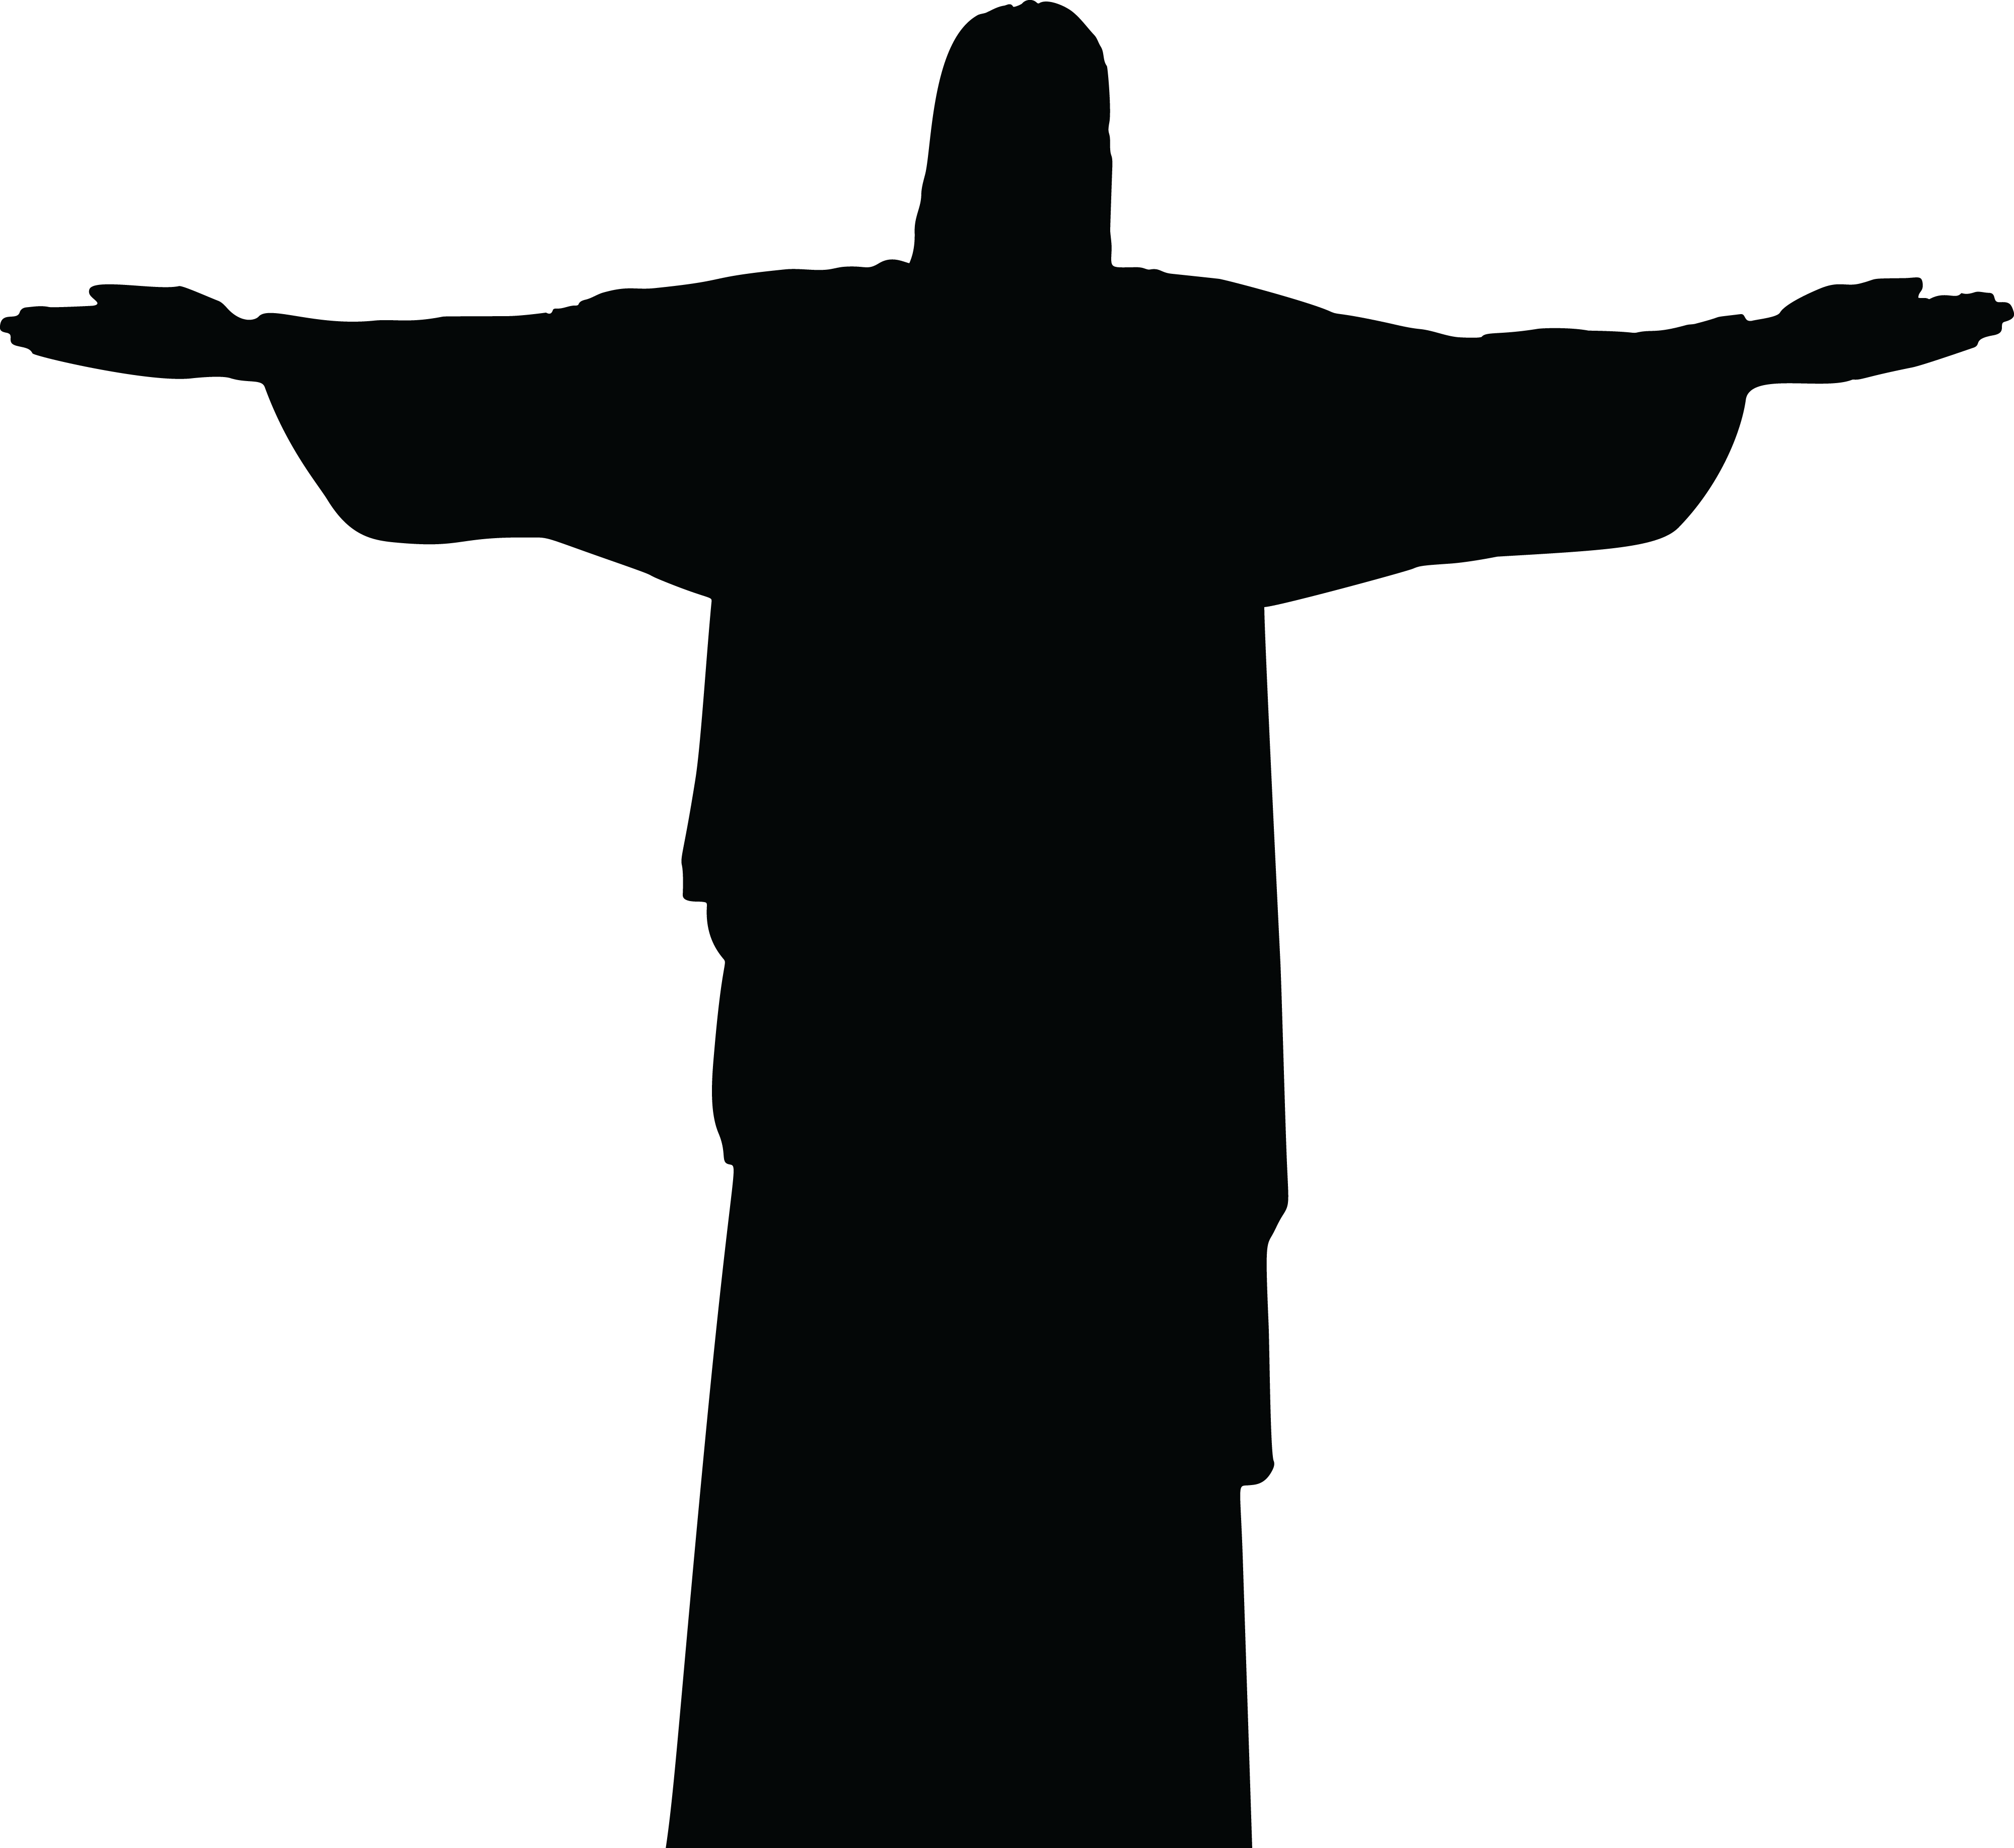 Epiphany clipart silhouette. Jesus carrying cross at